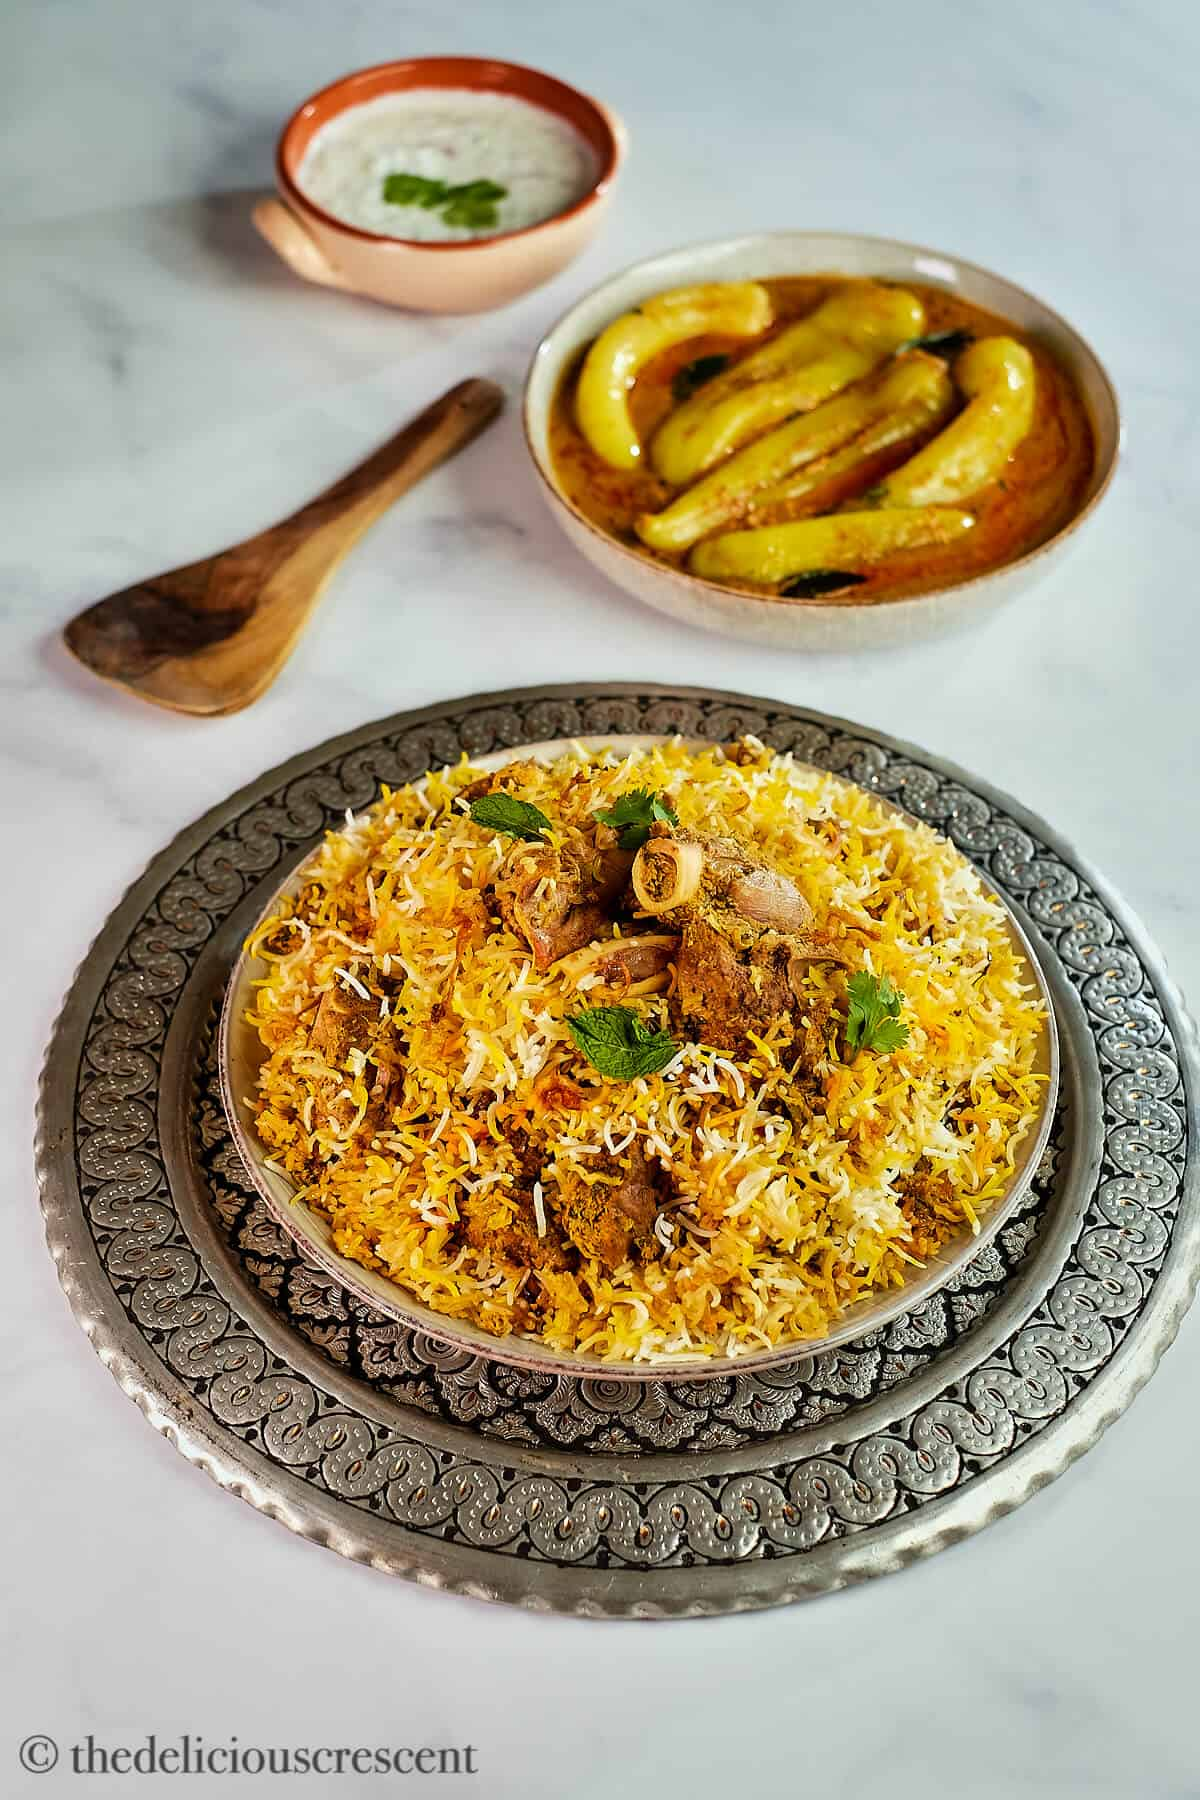 A plate full of lamb biryani served with chili pepper curry.